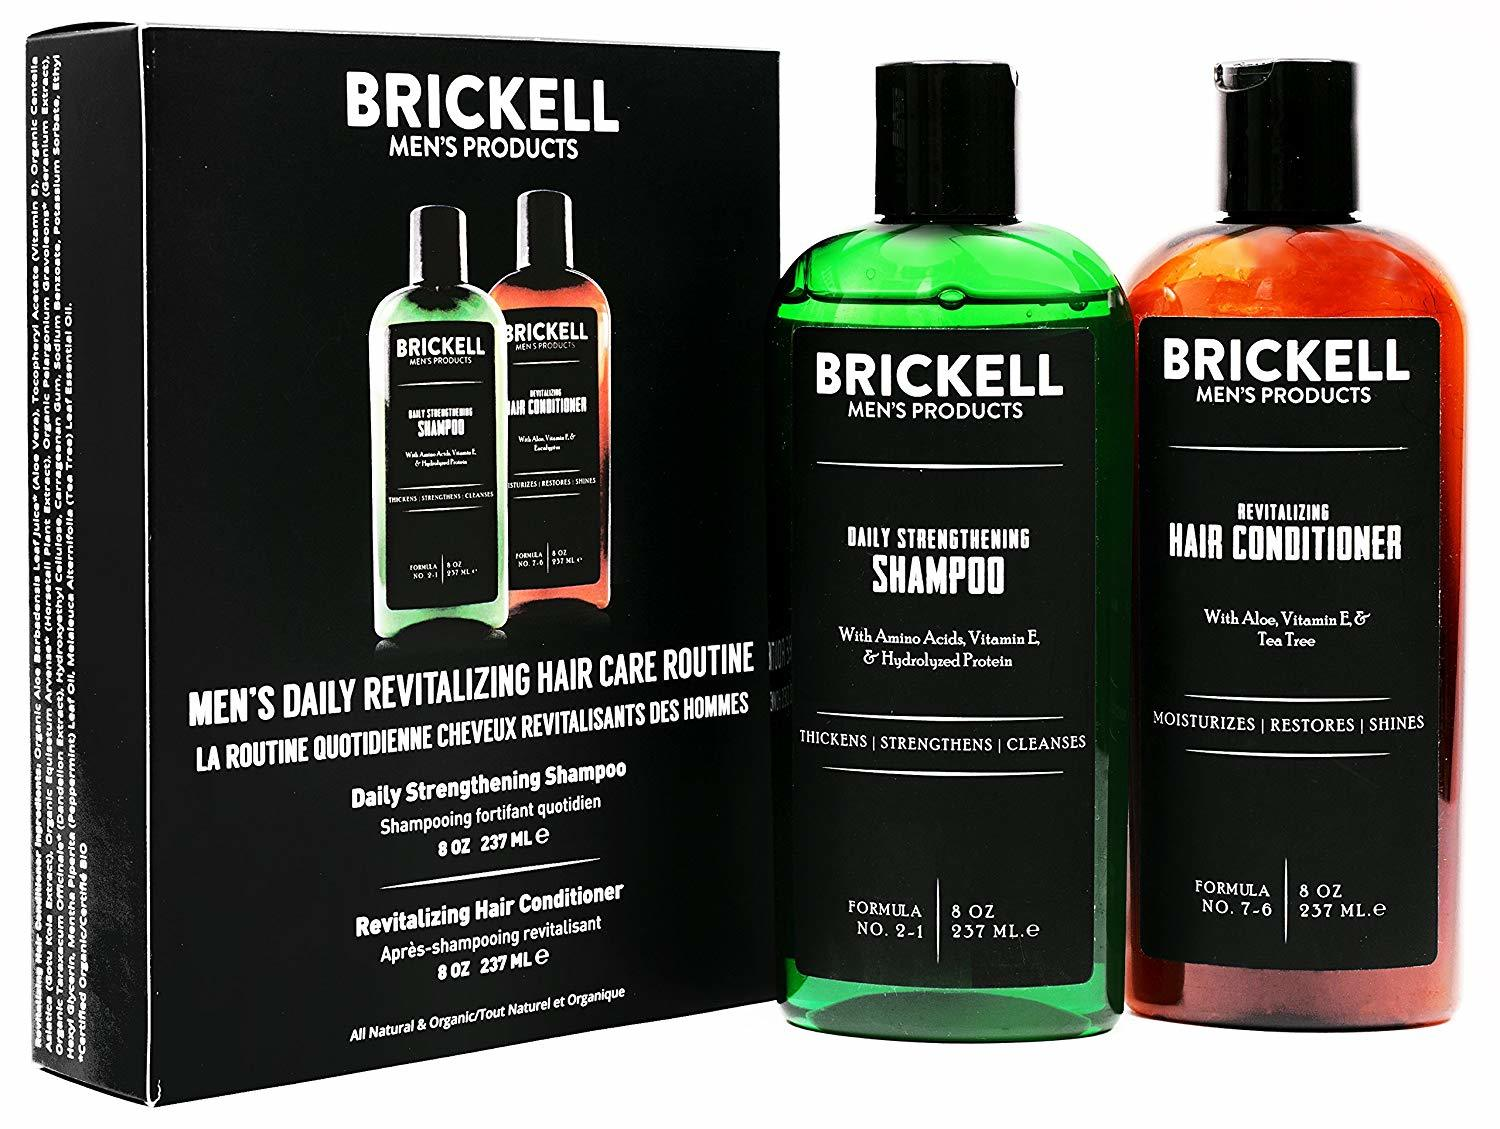 Brickell Men's Daily Revitalizing Hair Care Routine - Mint & Tea Tree Oil Shampoo + Strength & Volume Enhancing Conditioner - Natural & Organic